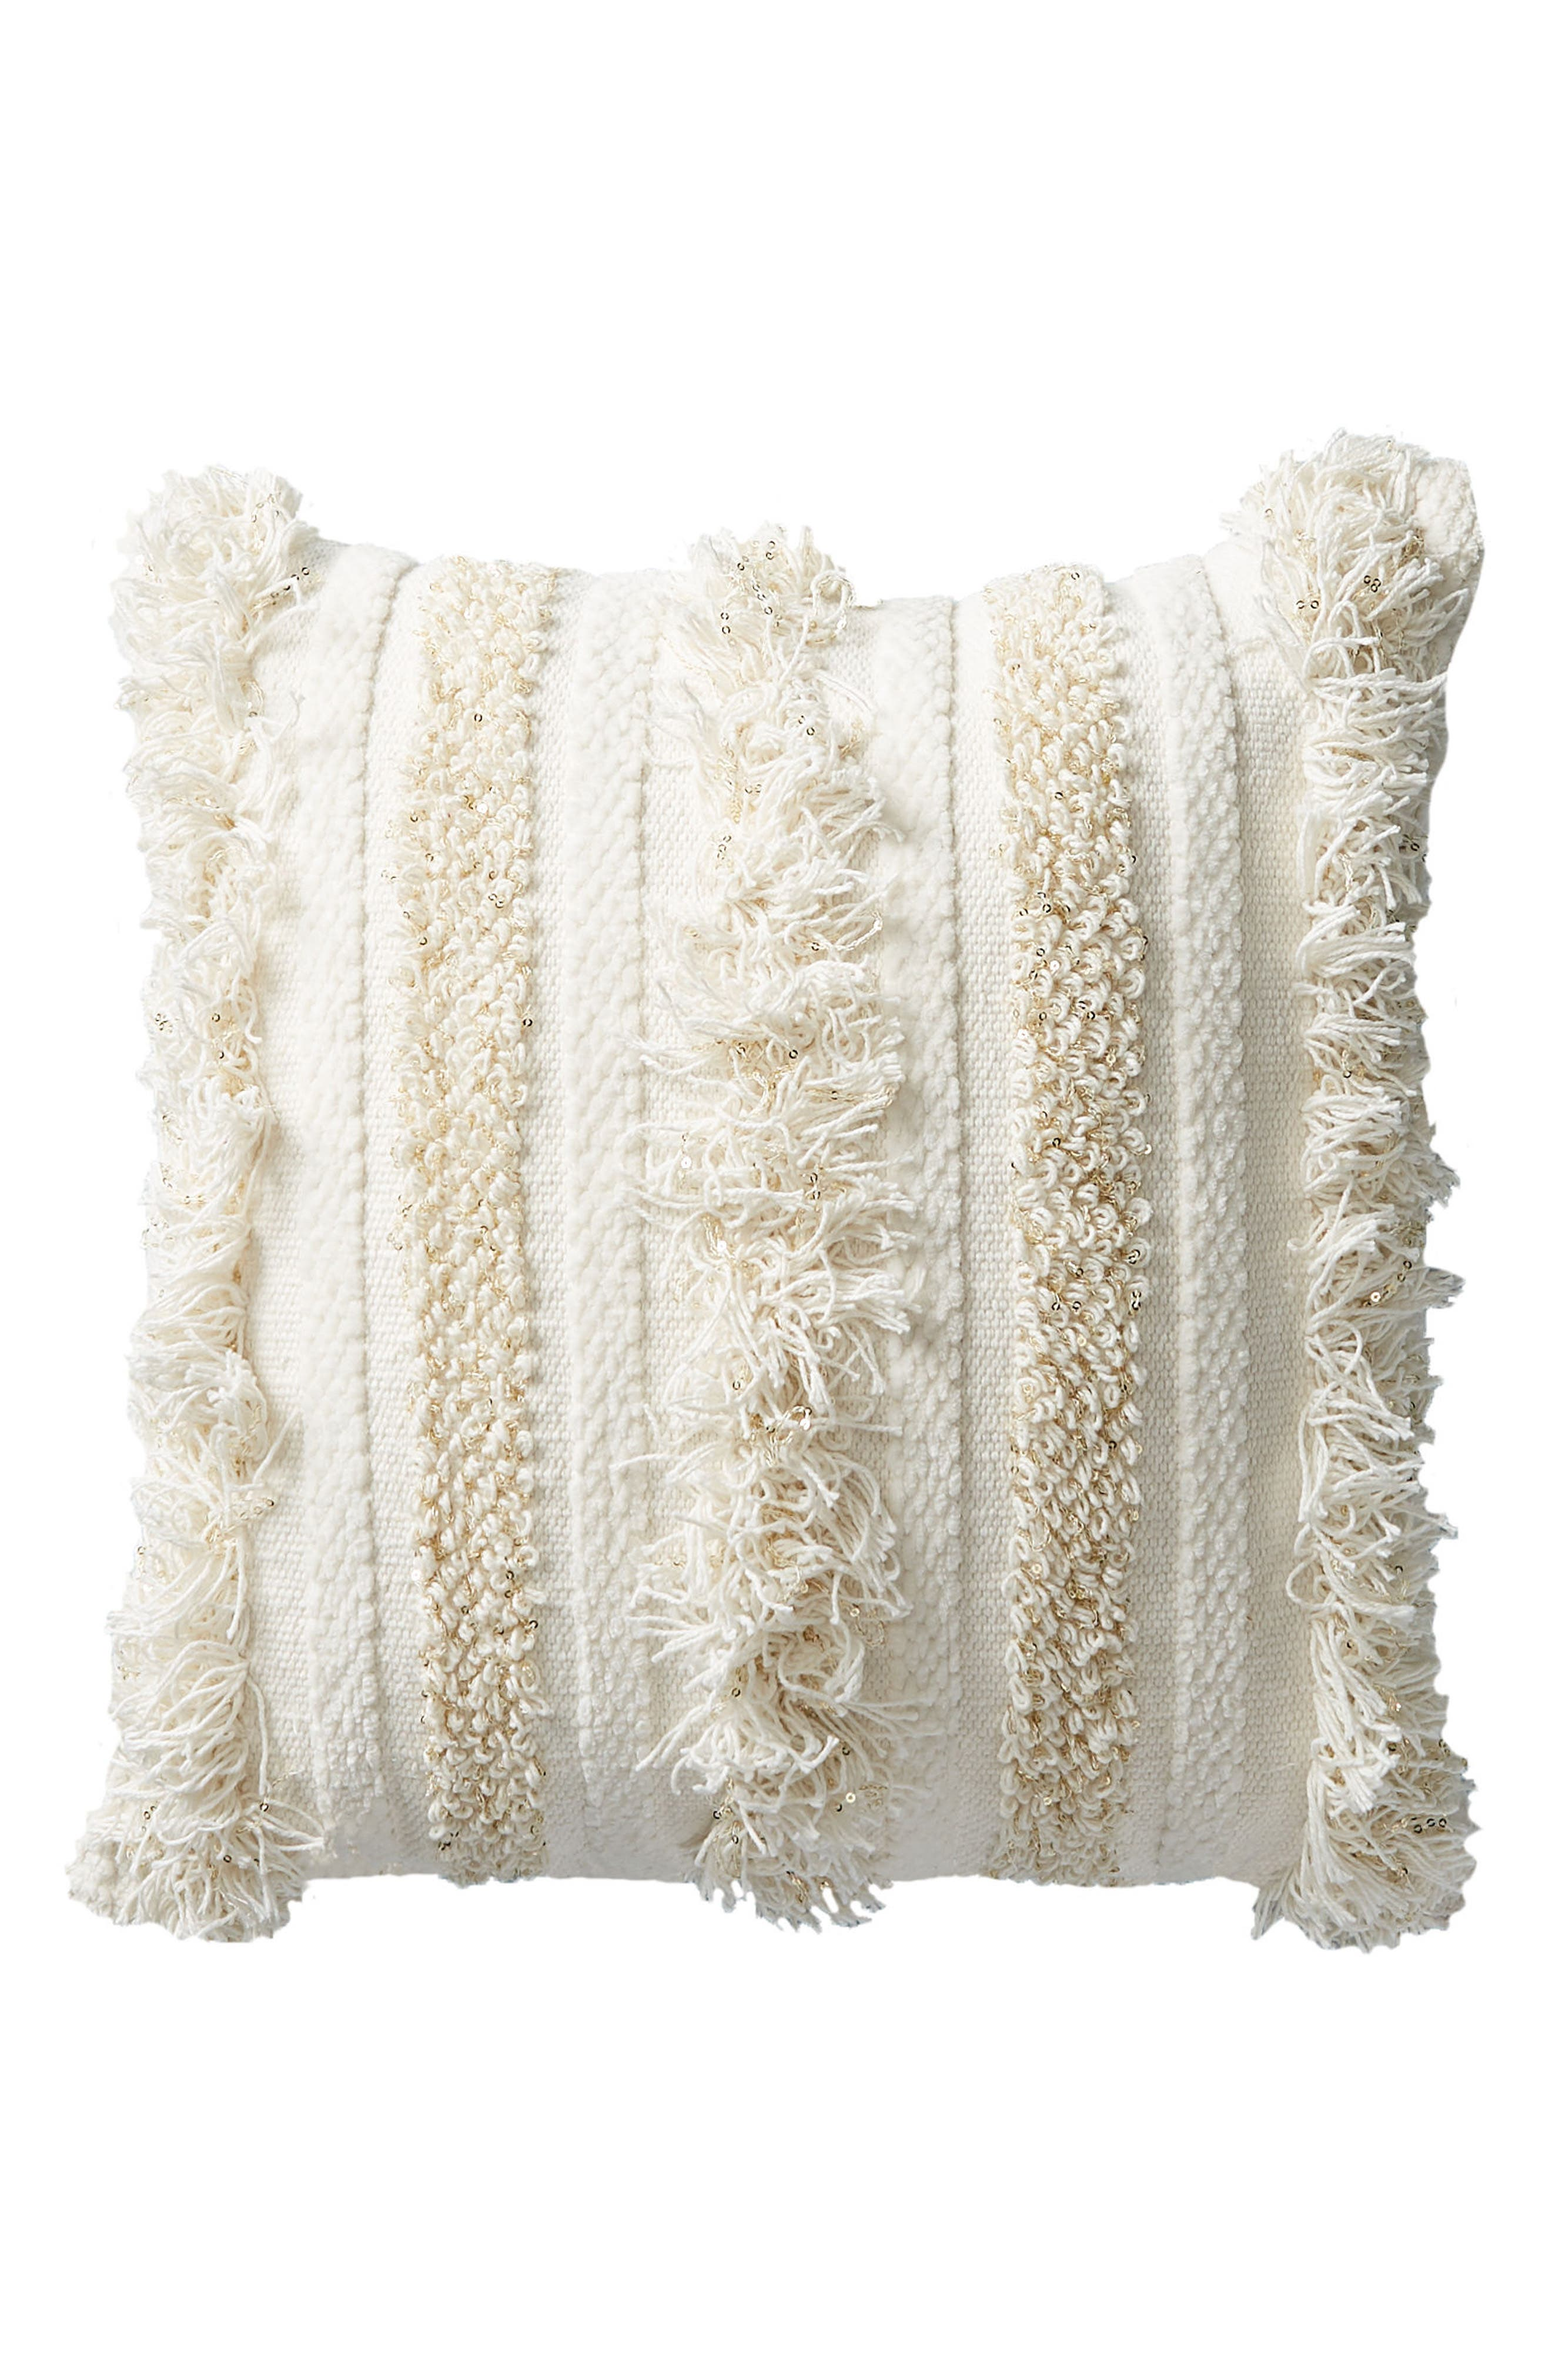 ANTHROPOLOGIE,                             Indira Accent Pillow,                             Main thumbnail 1, color,                             900